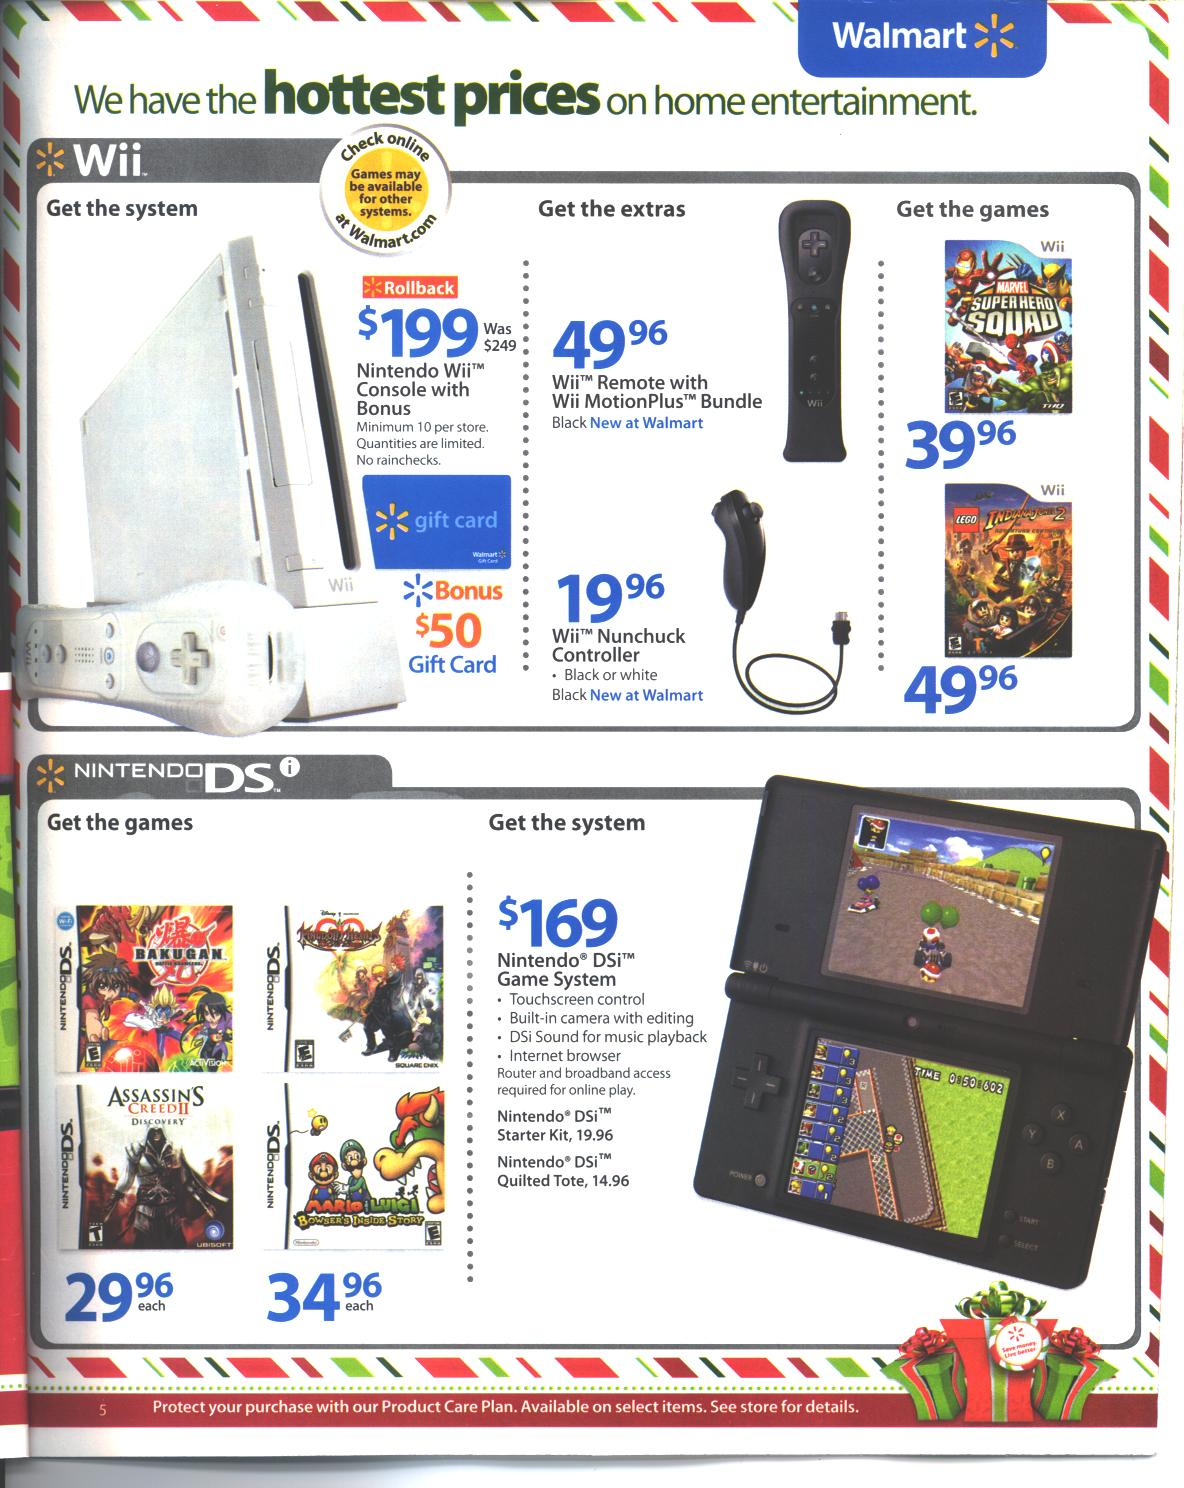 Walmart Deals Archives - Page 24 of 28 - Hunt4Freebies